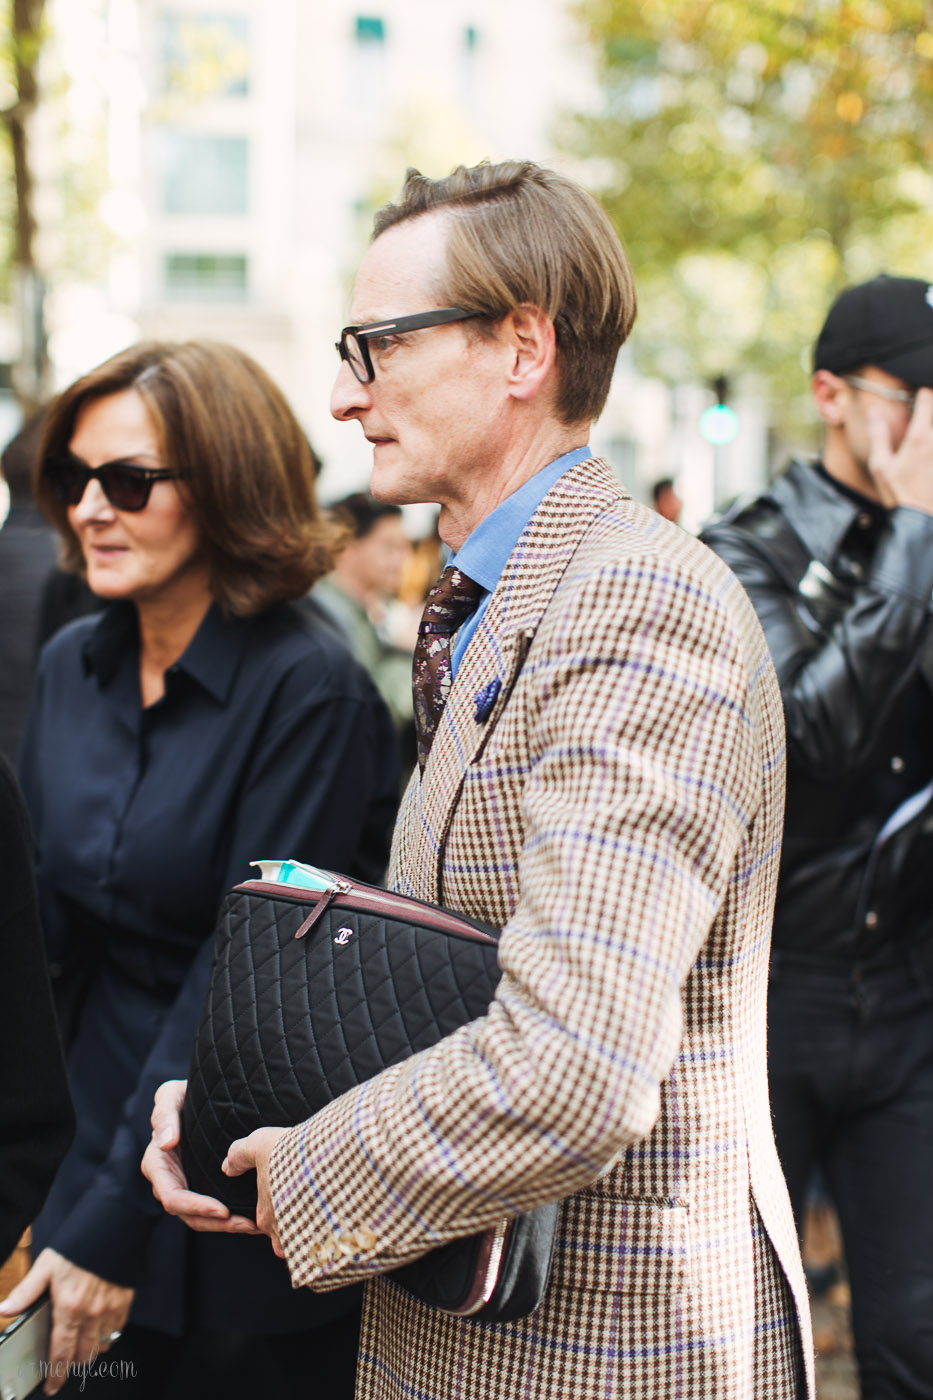 Street style favorite at Fashion Week Plaid photography Armenyl